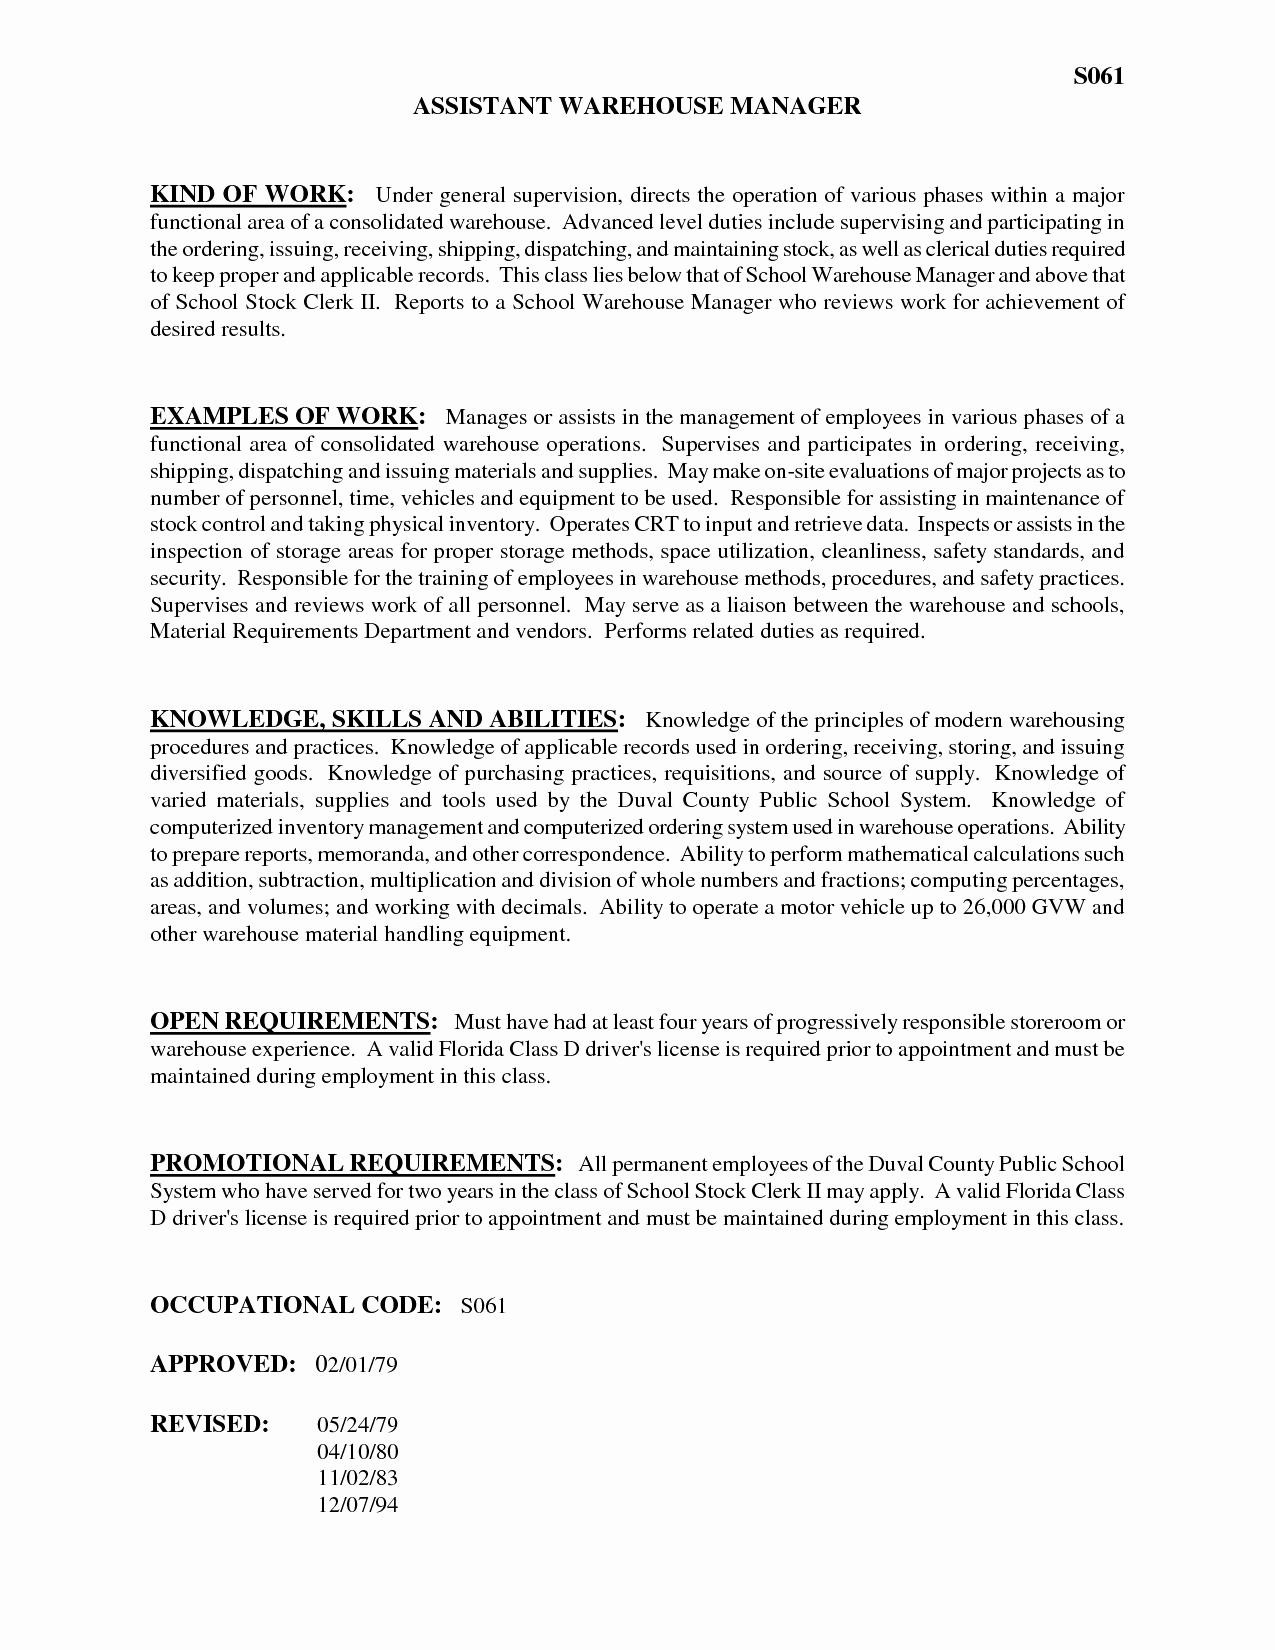 9 shipping and receiving clerk job description for resume examples